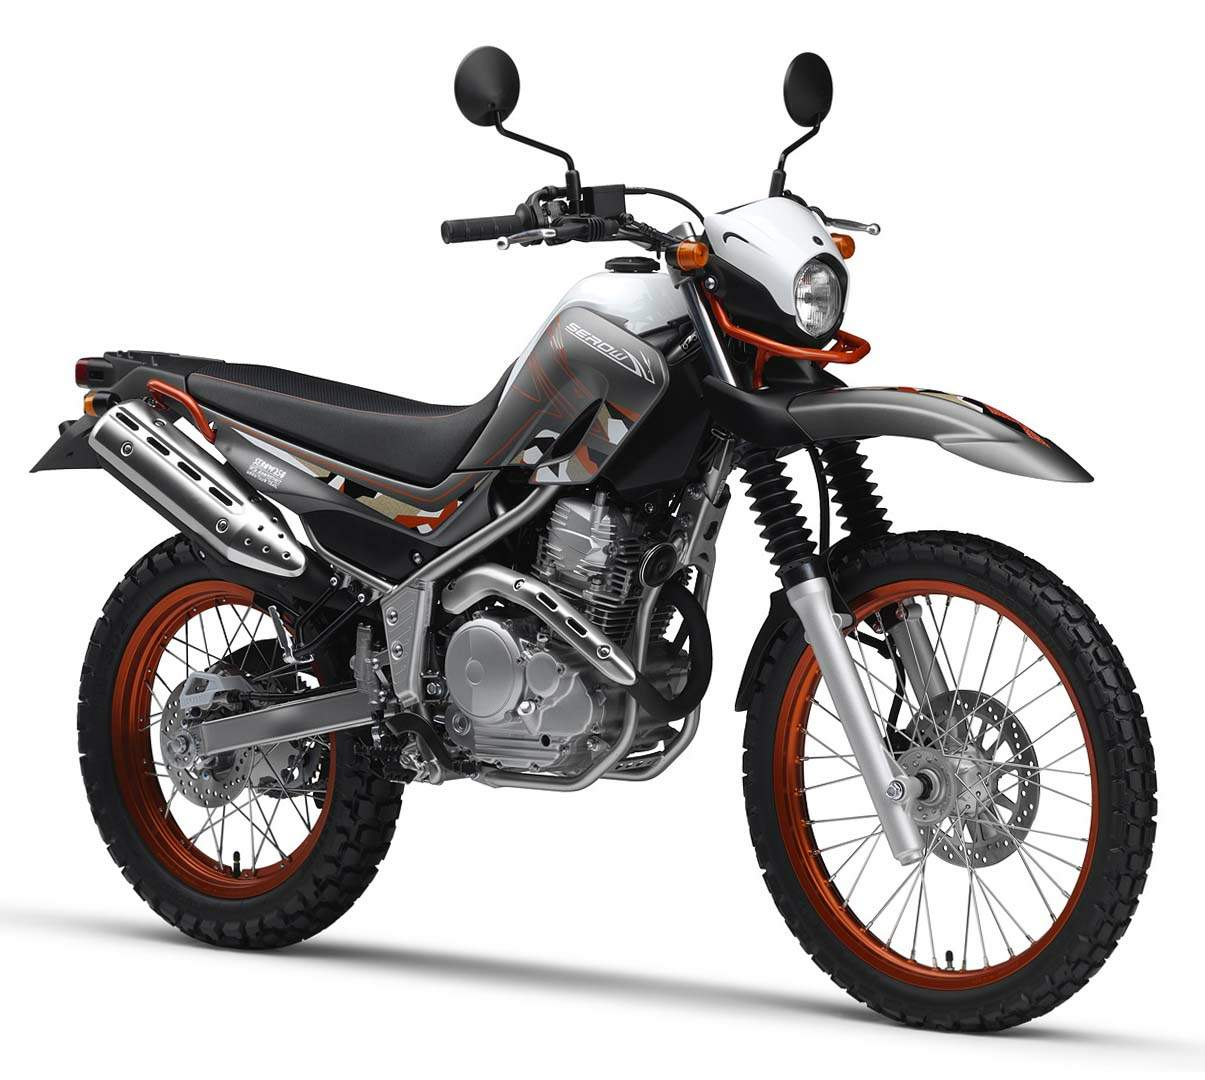 Мотоцикл Yamaha XT 250 Serow 30th Anniversary Special Edition 2015